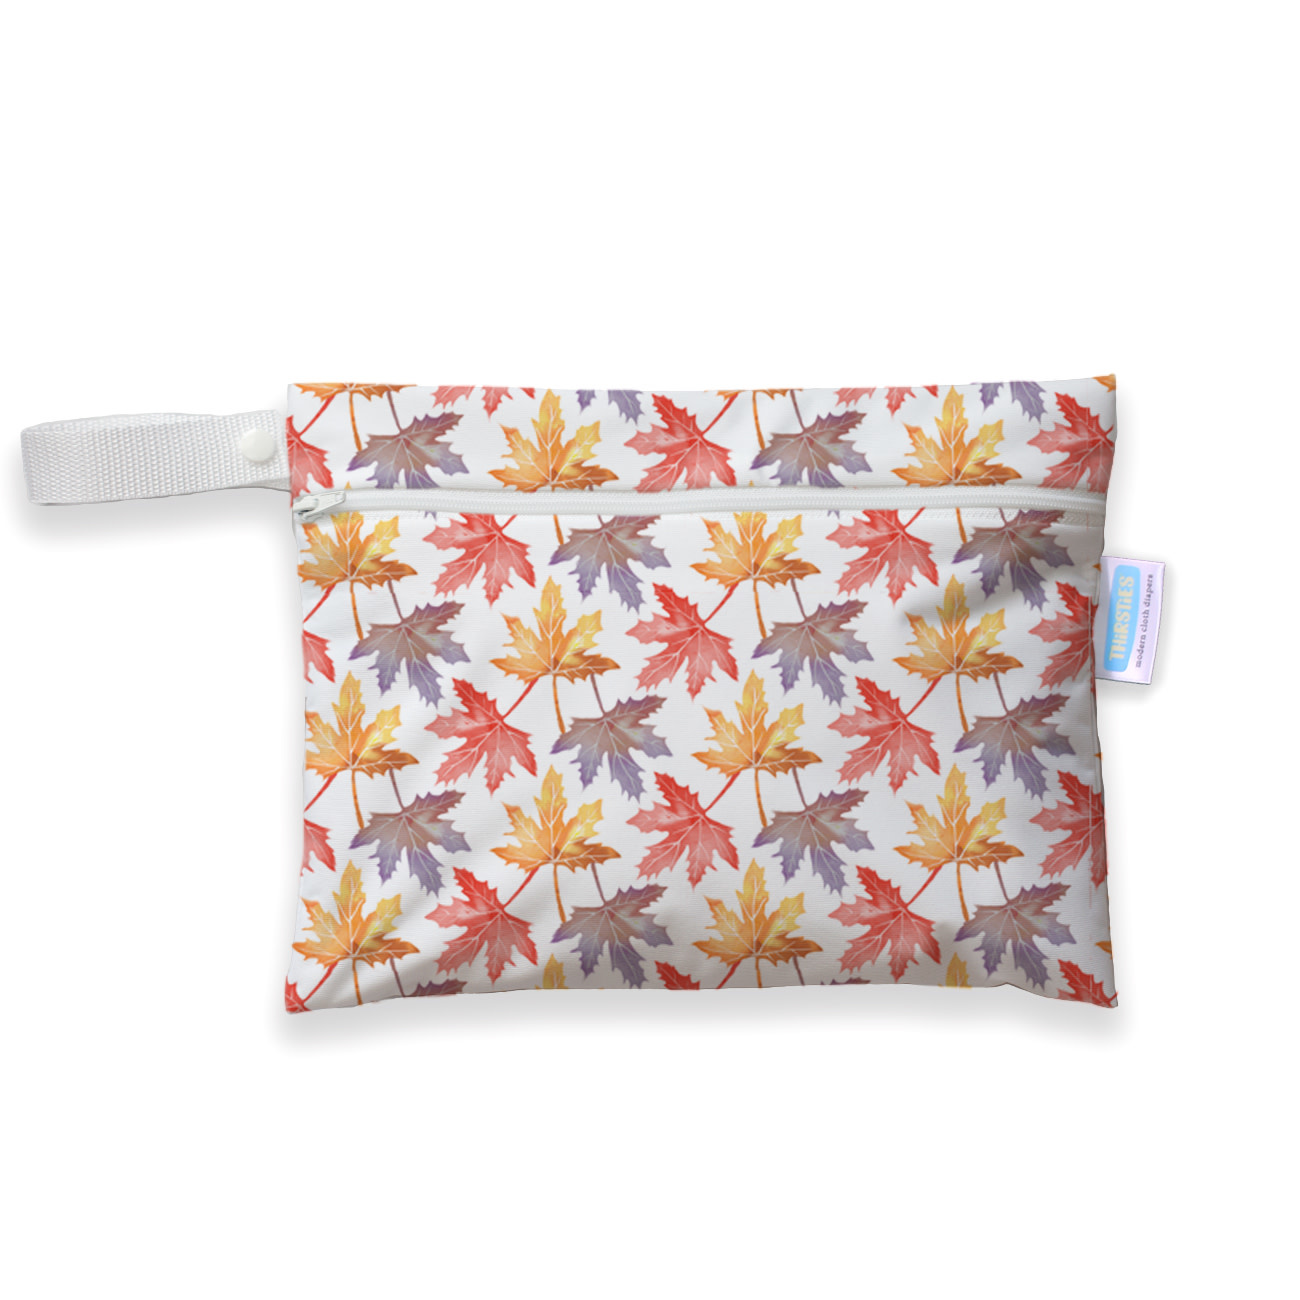 Thirsties Thirsties Mini Wet Bag Autumn Blaze